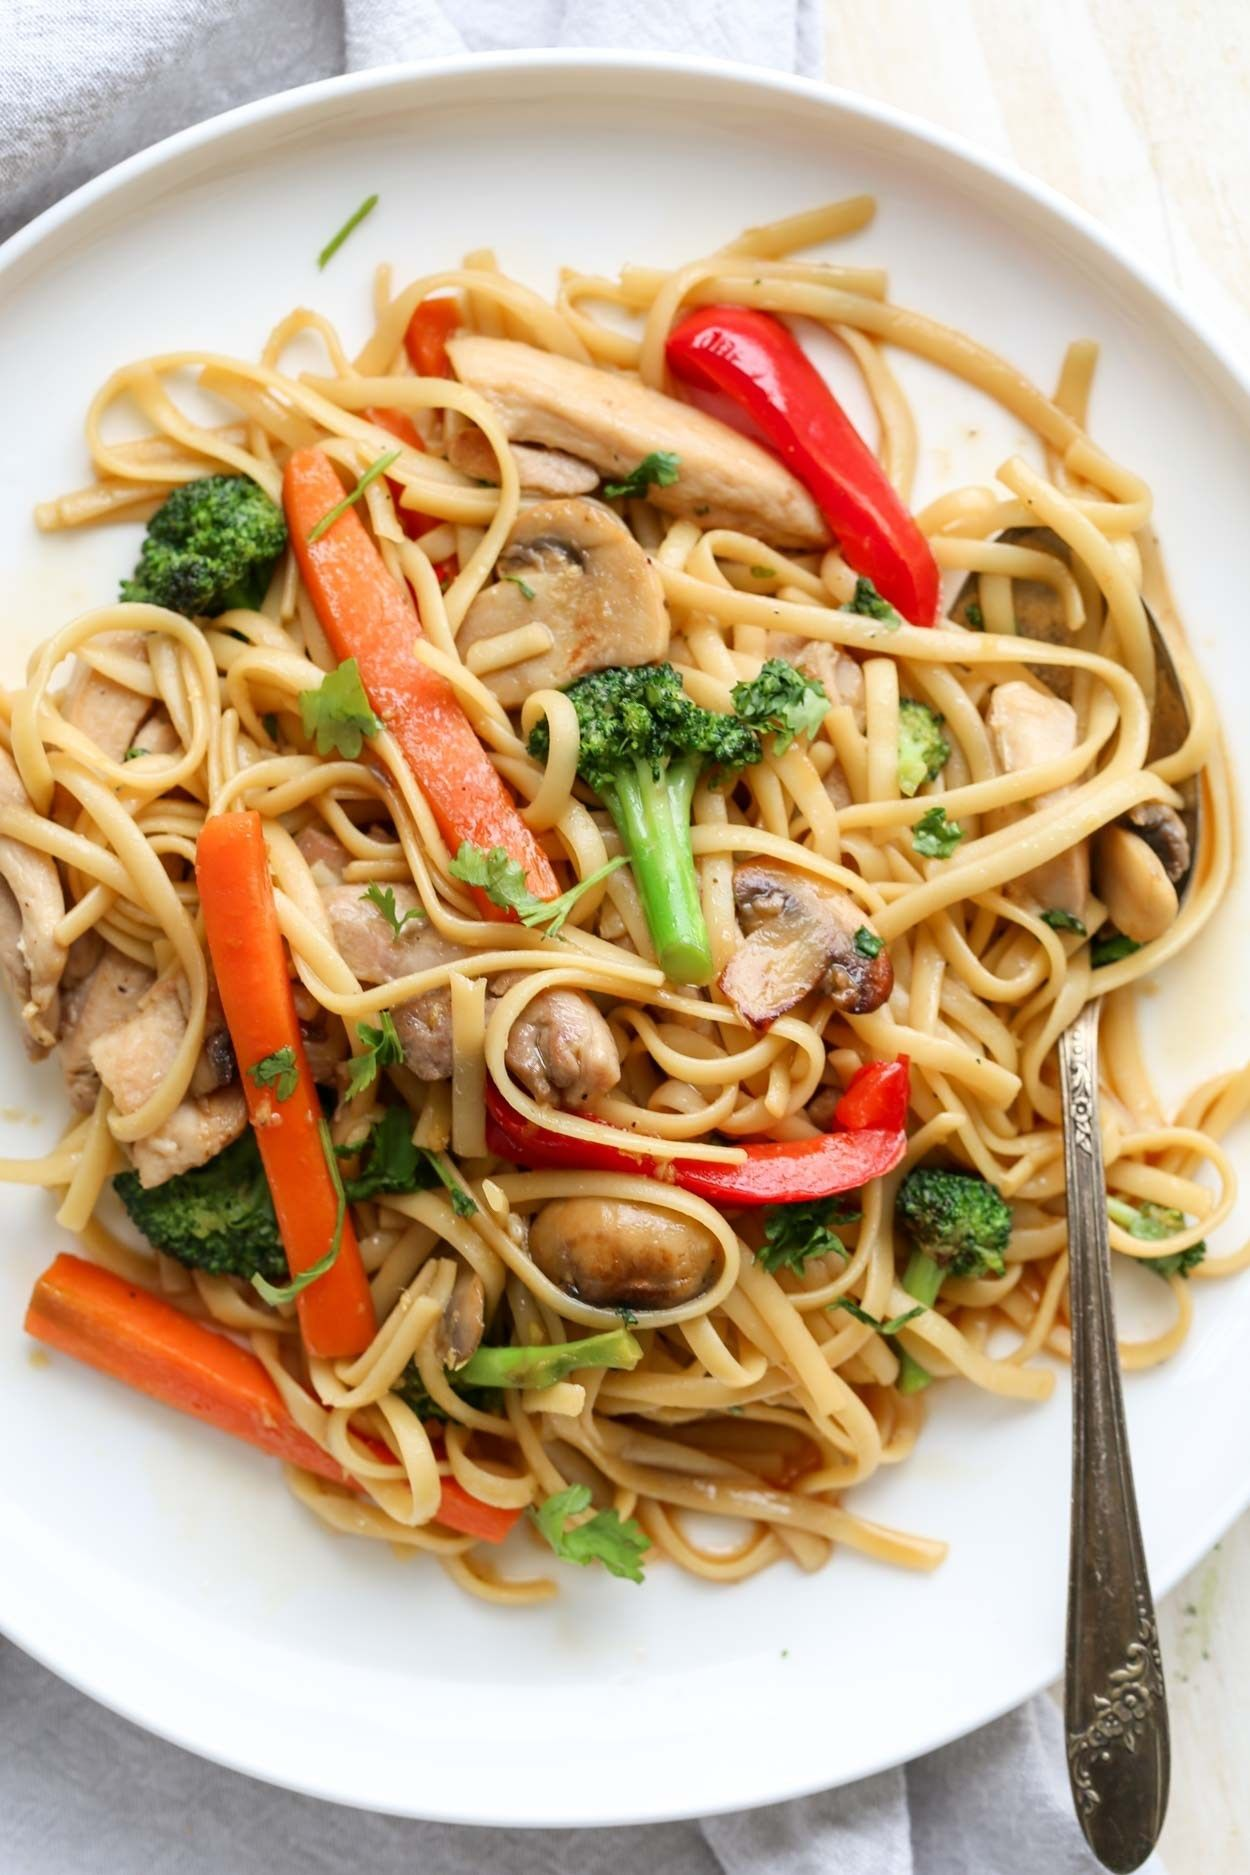 How To Make Vegetable Chicken Stir Fry With A Sweet And Tangy Sauce Served With Pasta Chicken And Veg Stir Fry Recipes Chicken Chicken Stir Fry Wok Recipes